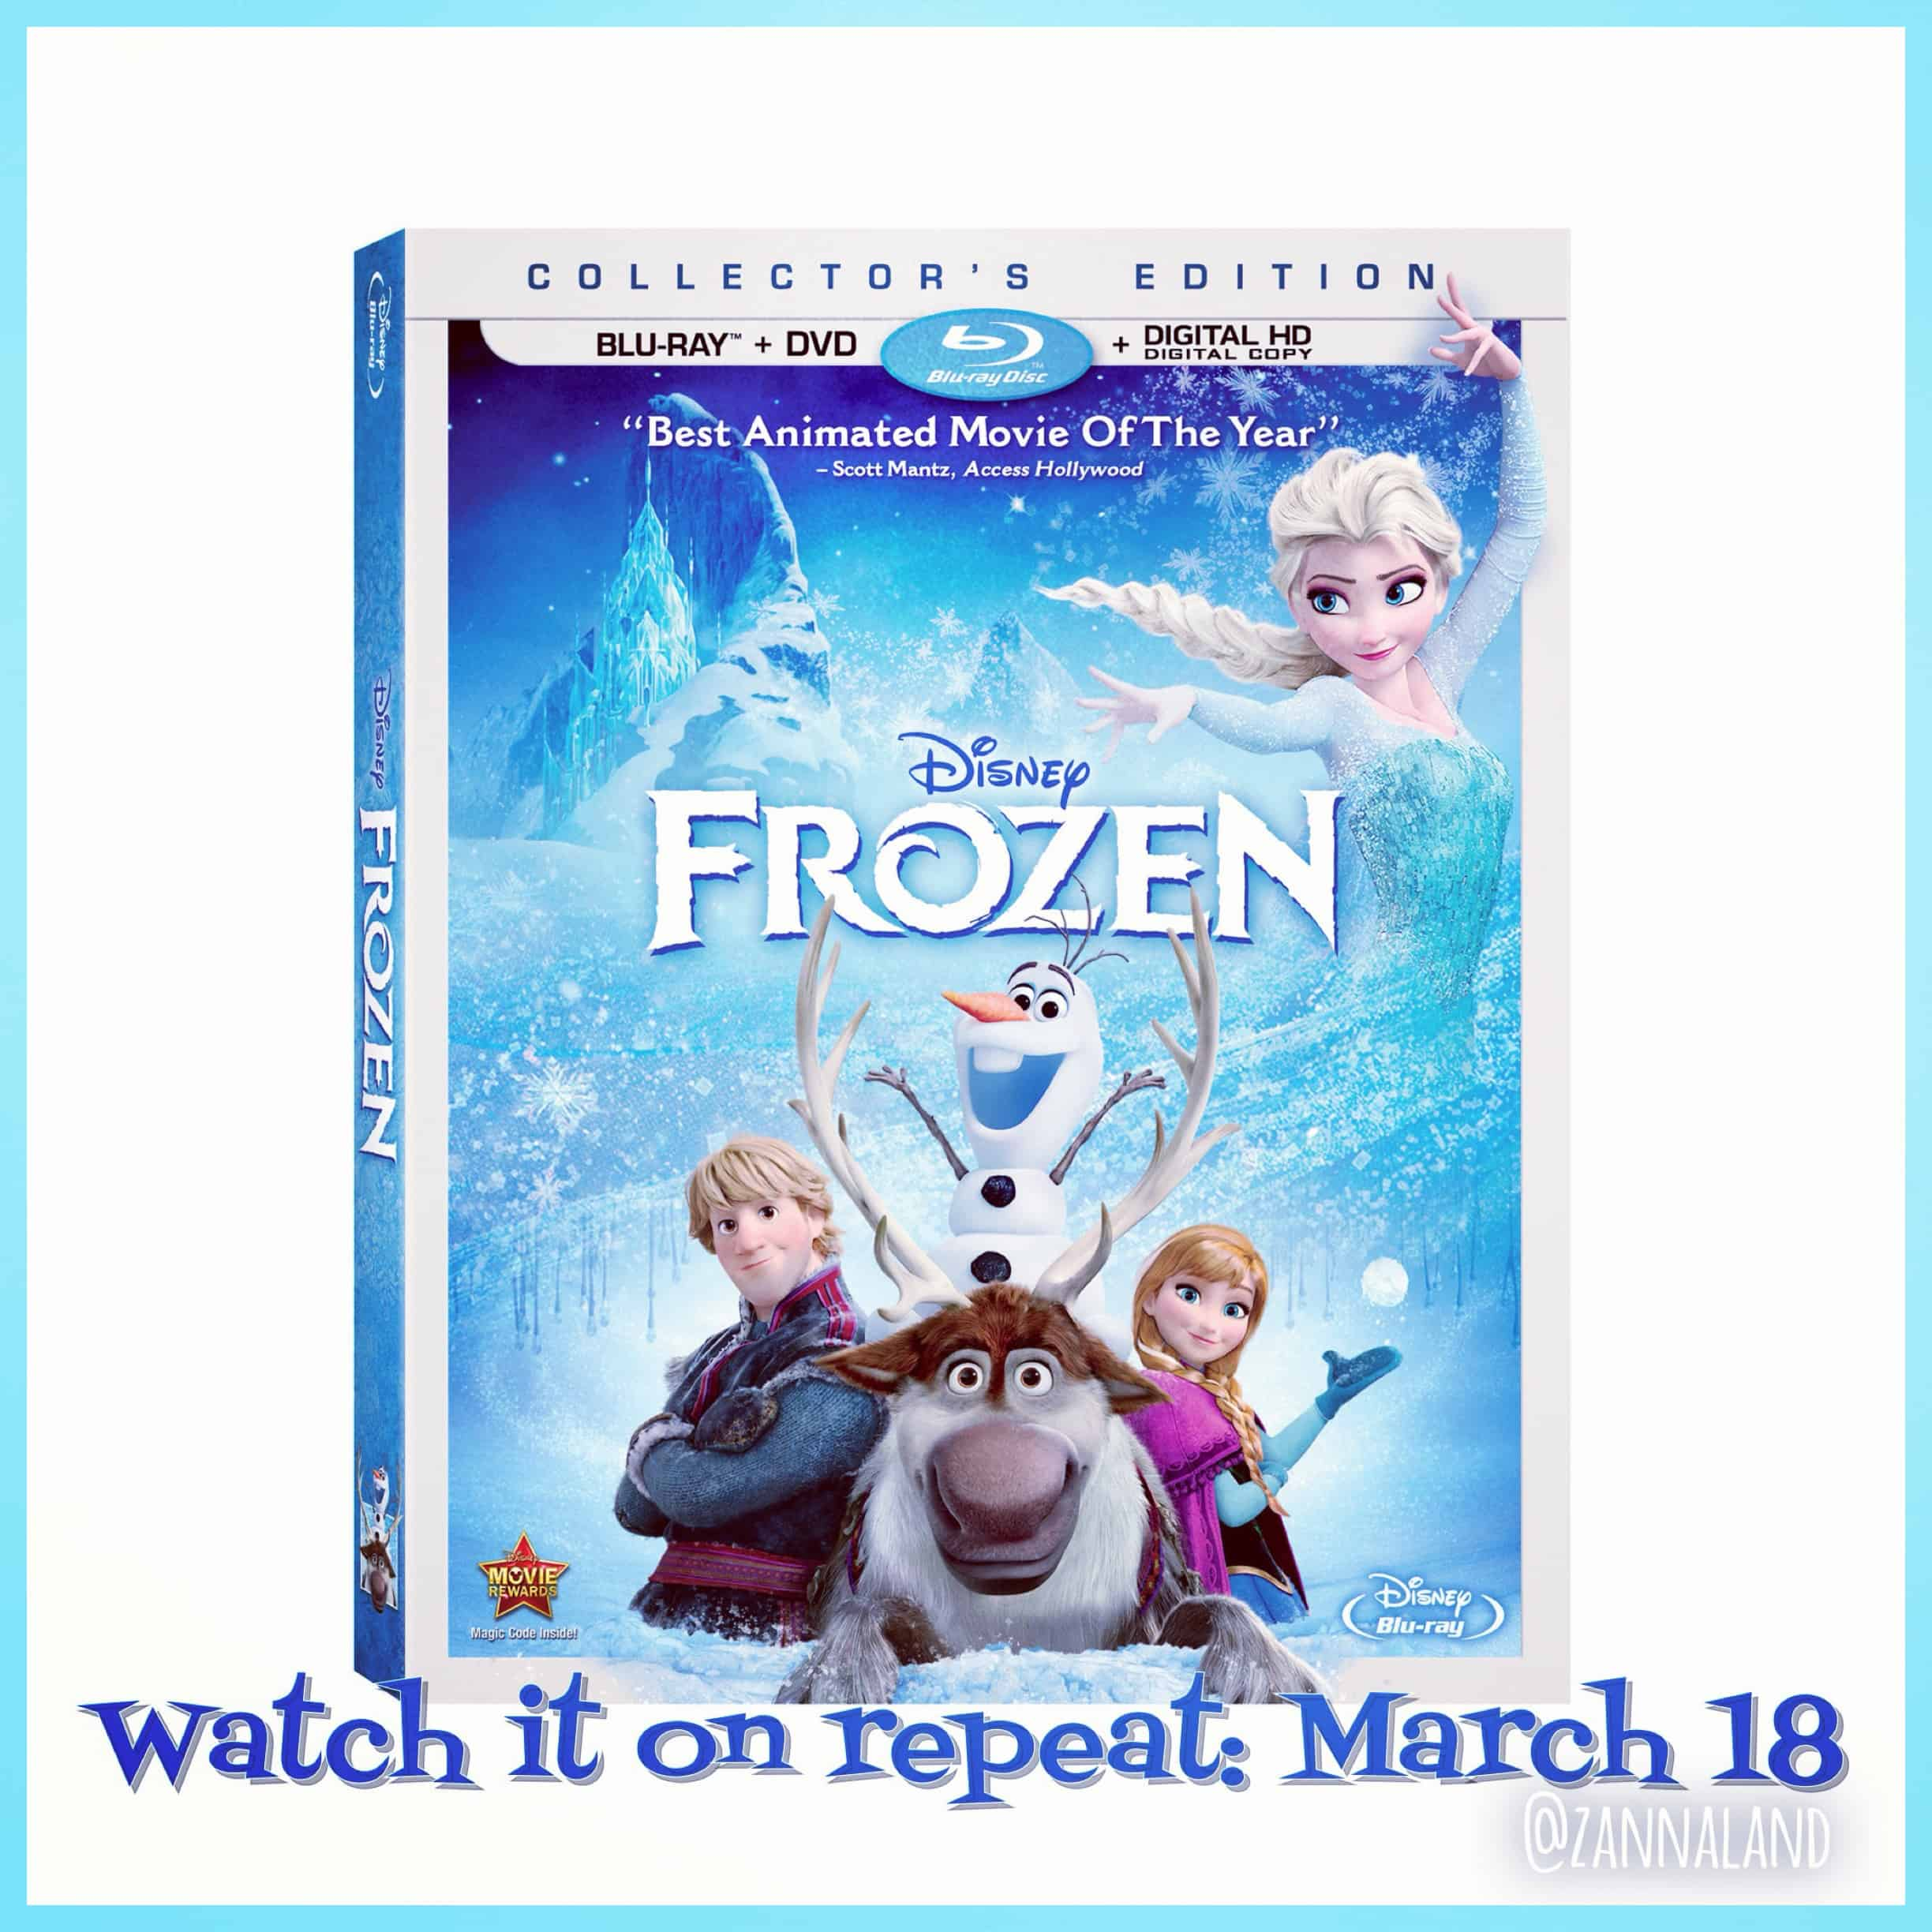 Frozen on Blu Ray and DVD March 18